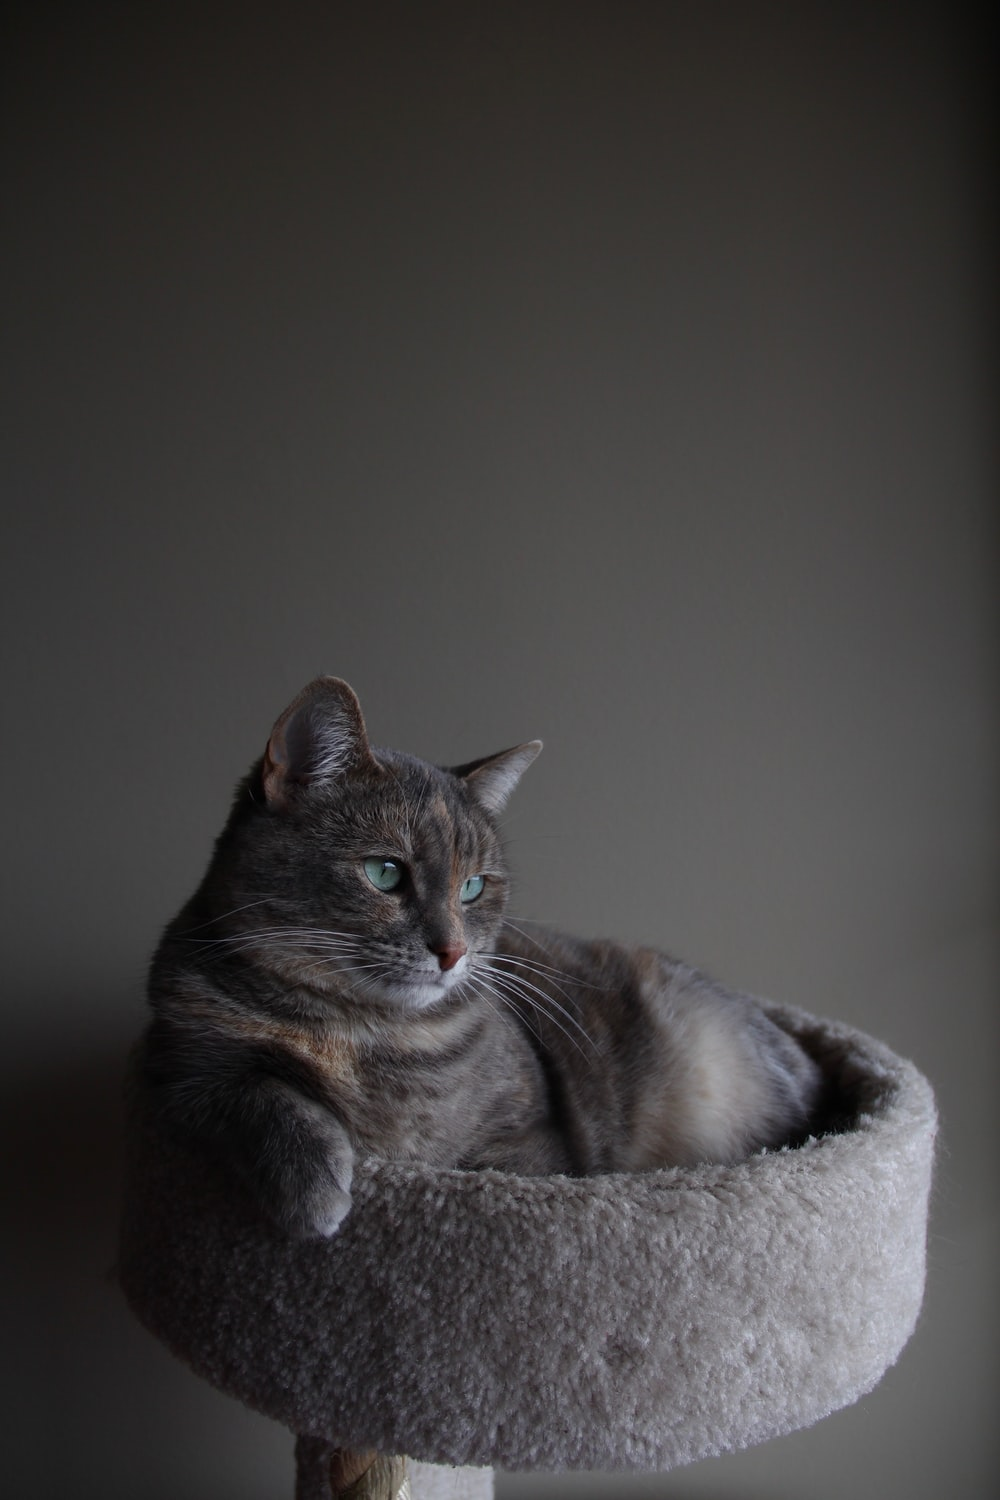 silver tabby cat on gray cat tree inside room